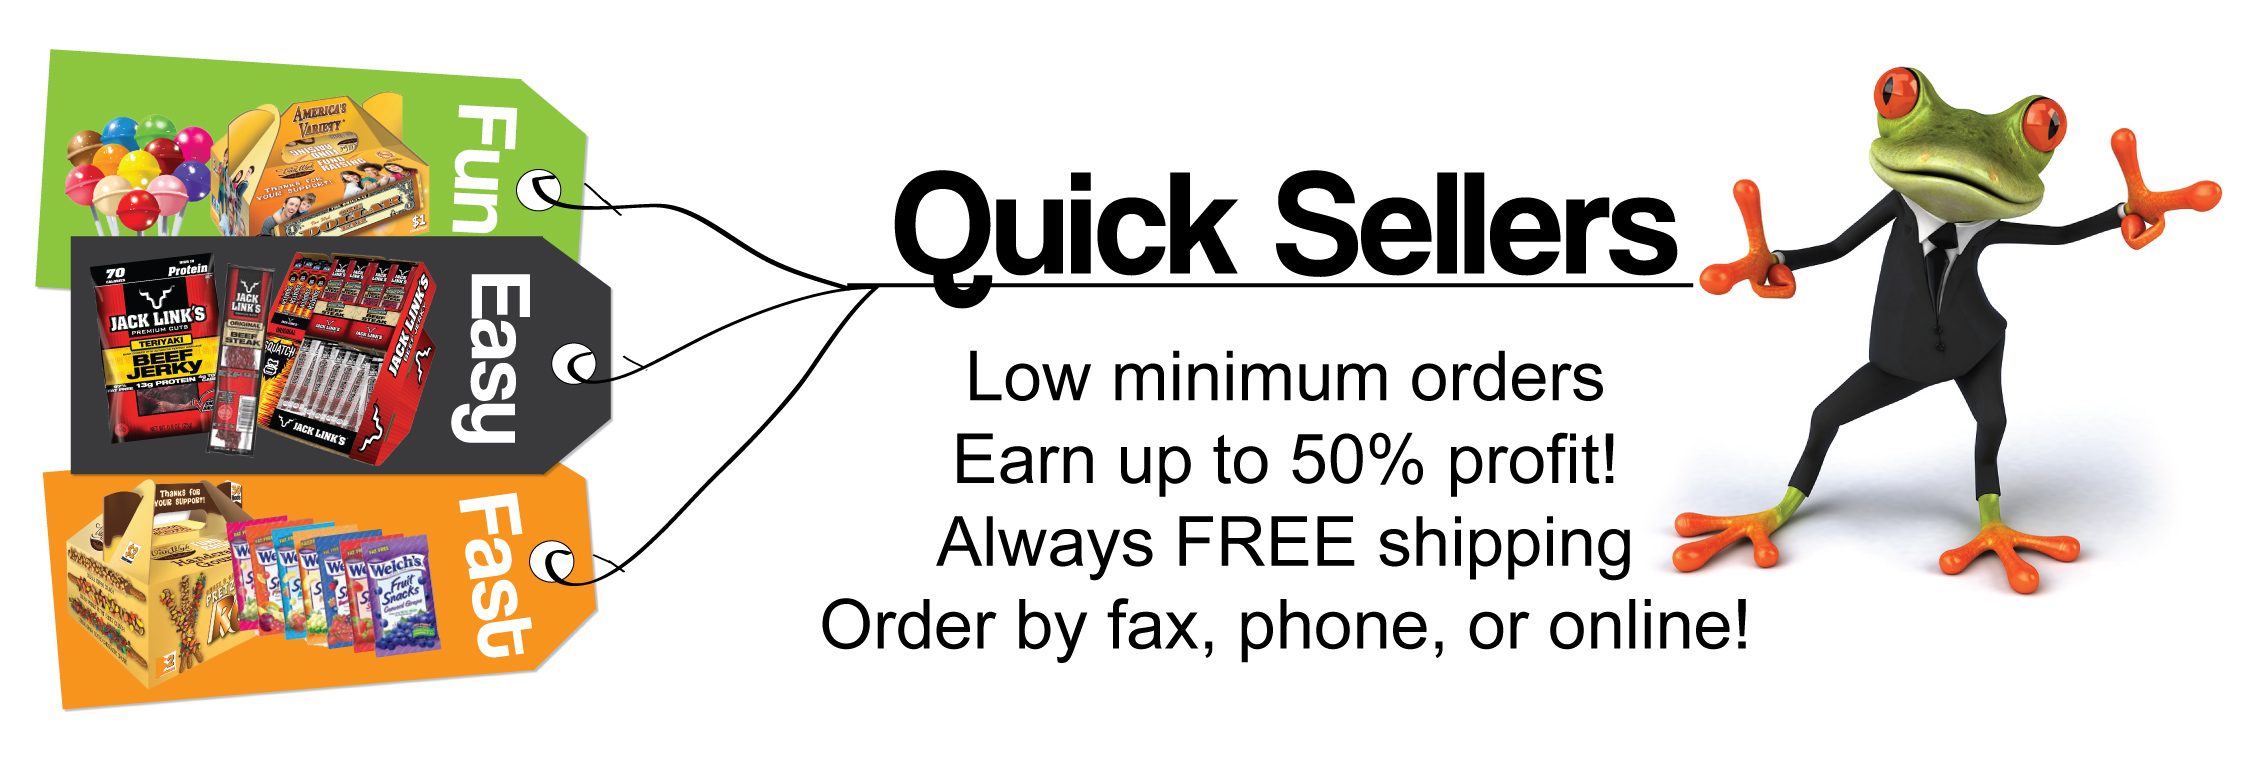 quick-sellers-banner-larger.jpg